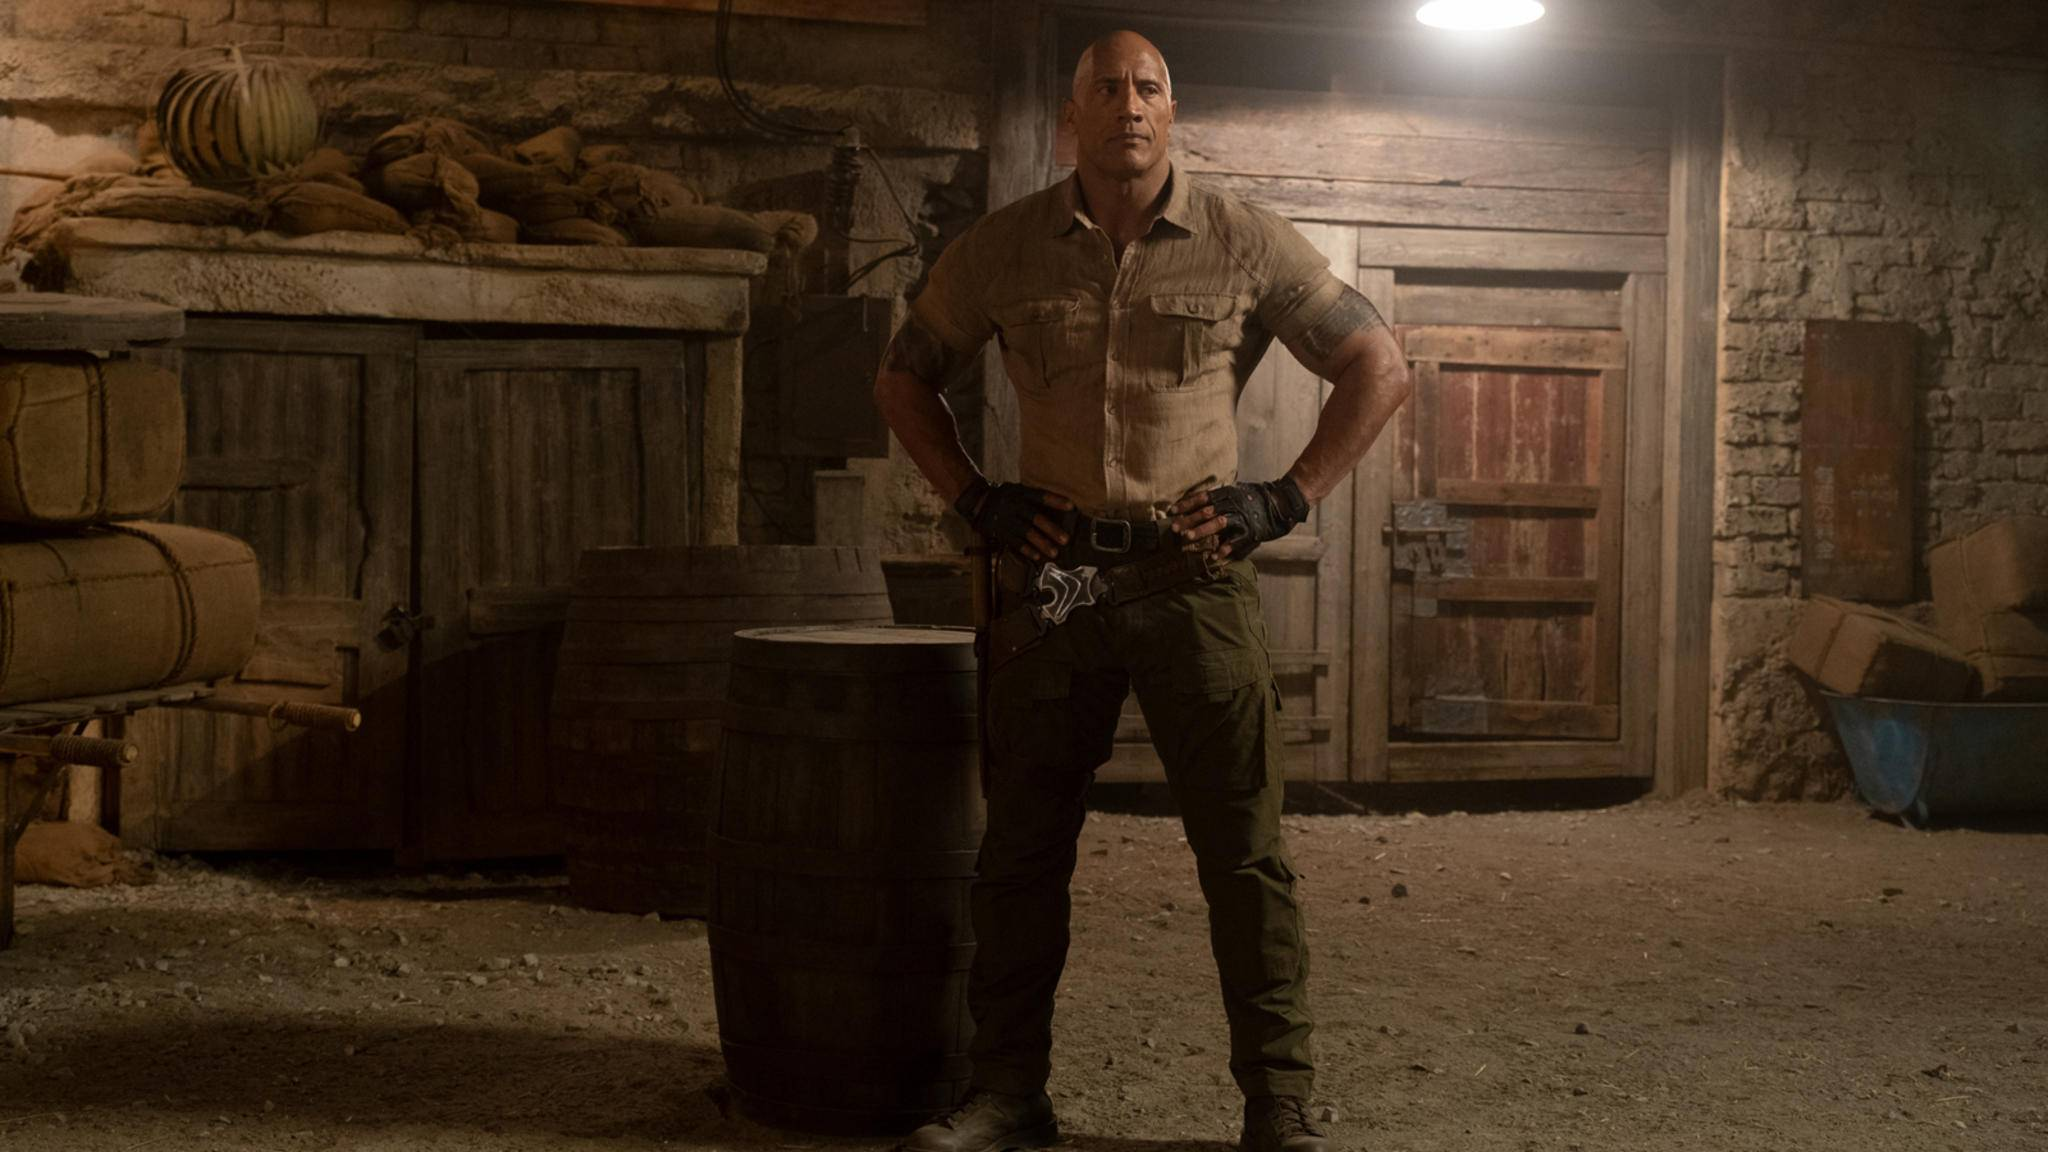 Dwayne Johnson in Jumanji: The Next Level